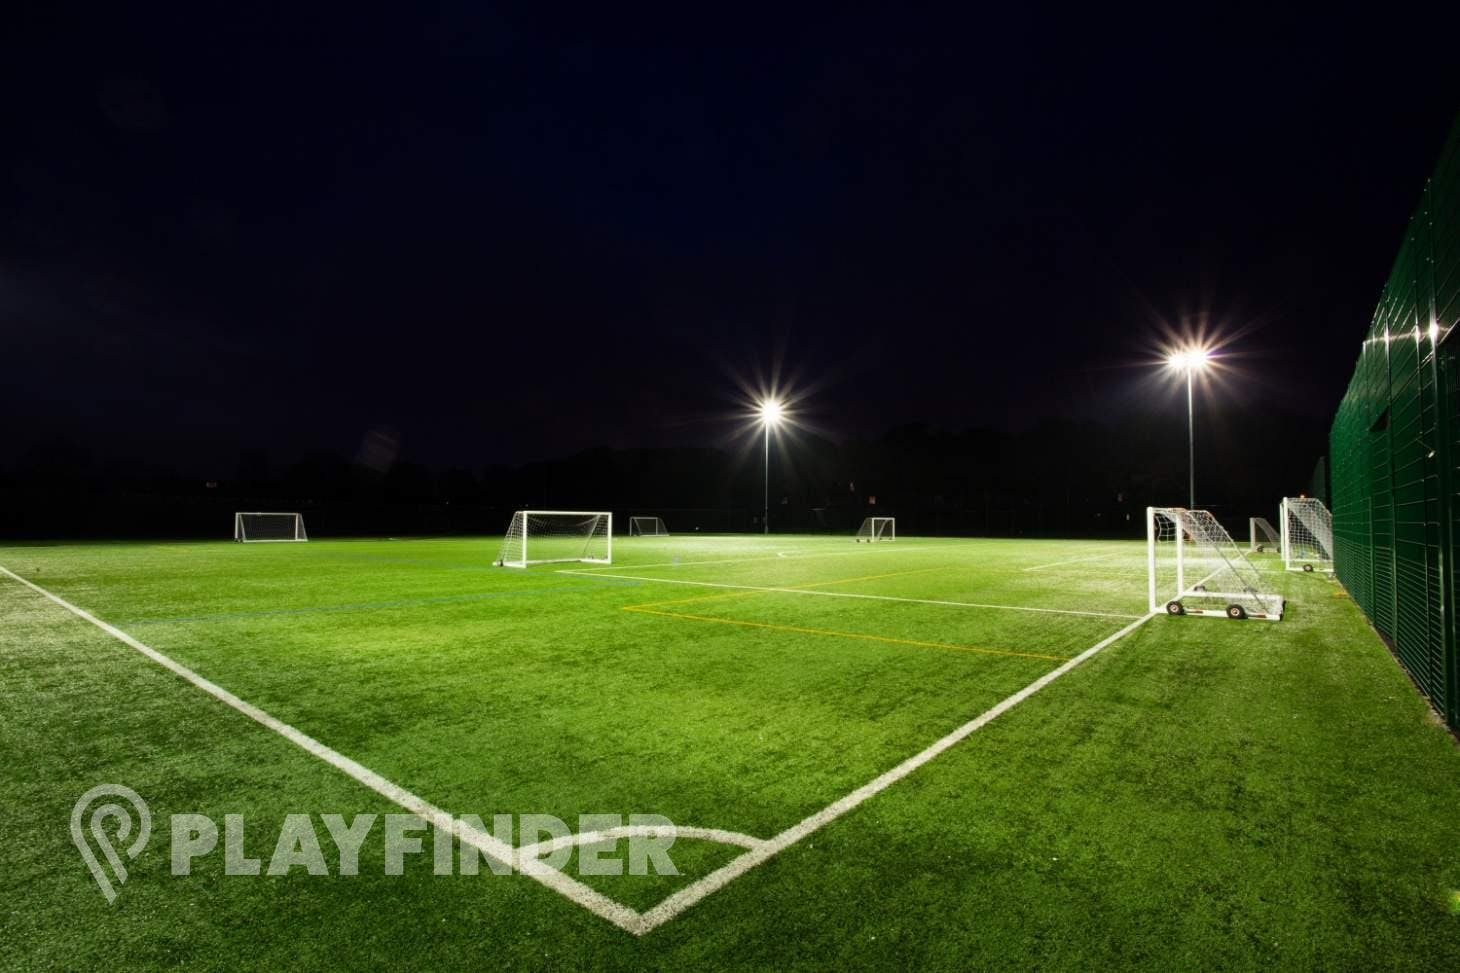 London Tigers Sports Complex 11 a side | 3G Astroturf football pitch